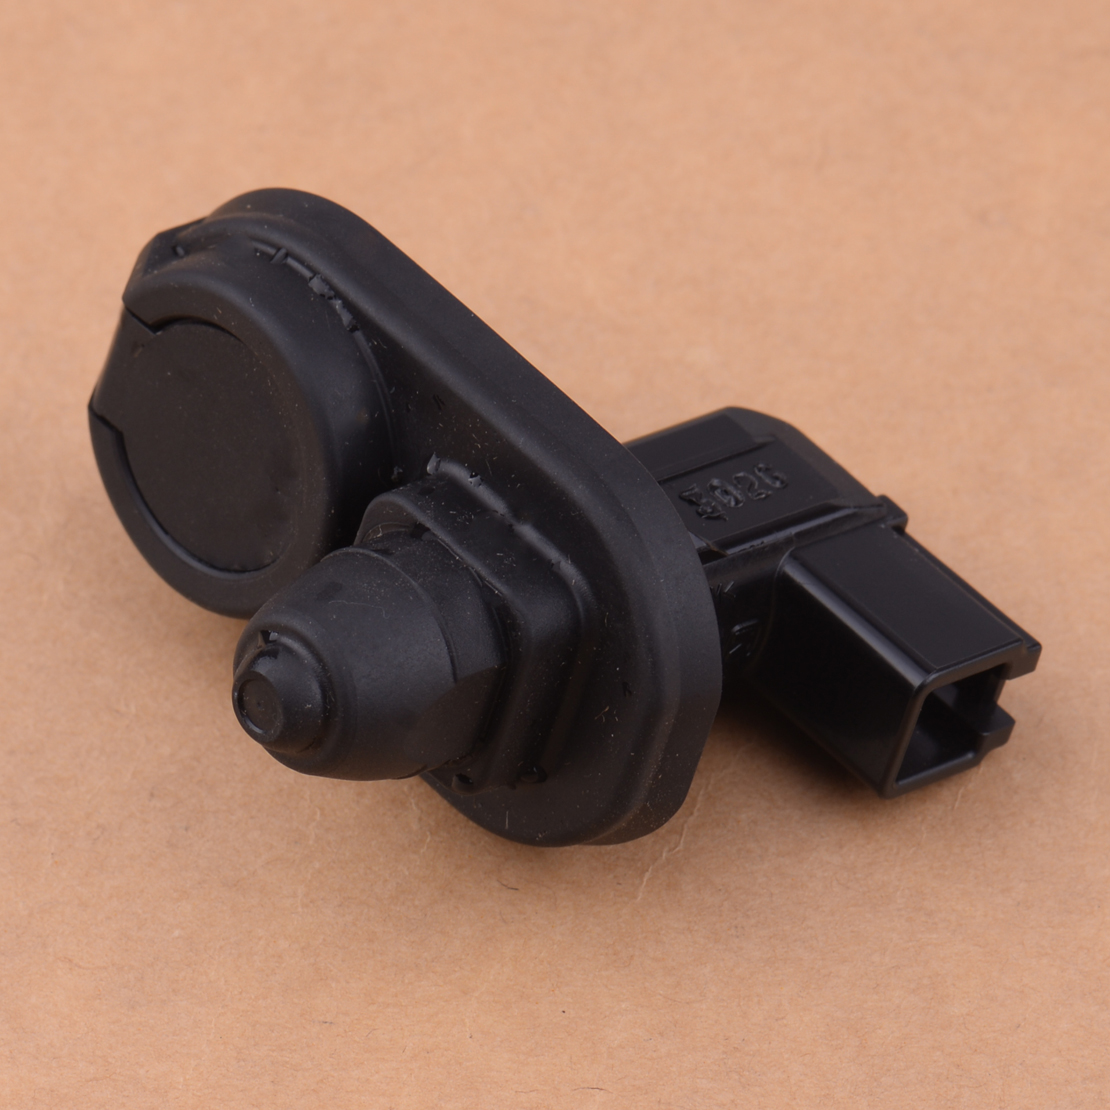 DWCX 1Pc <font><b>Door</b></font> Jamb Light Lamp Switch 35400S5A013 35400-S5A-013 Fit For Honda Accord <font><b>Civic</b></font> CR-V Crosstour Element Odyssey image